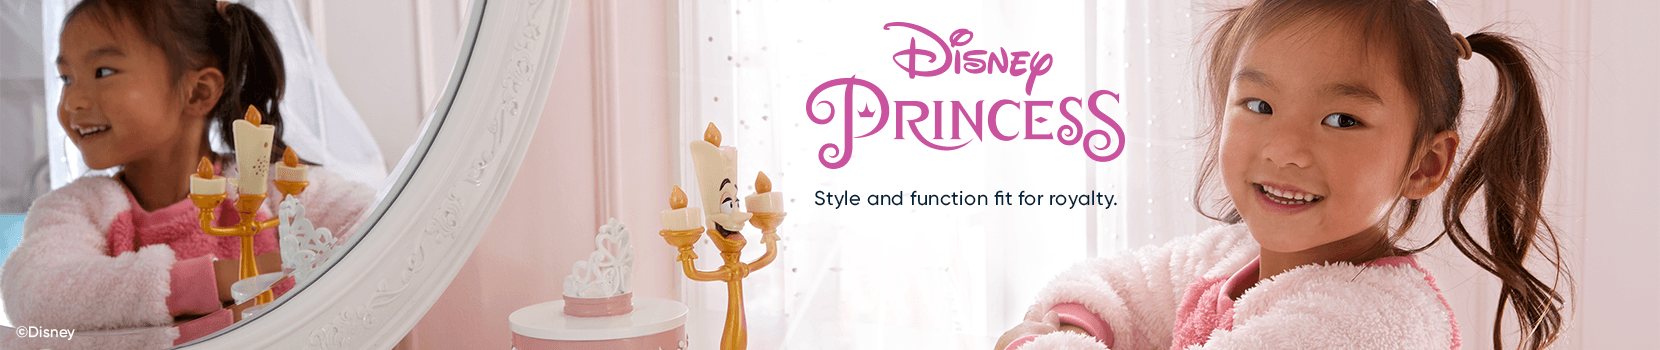 Disney Princess. Disney Princess Collection.